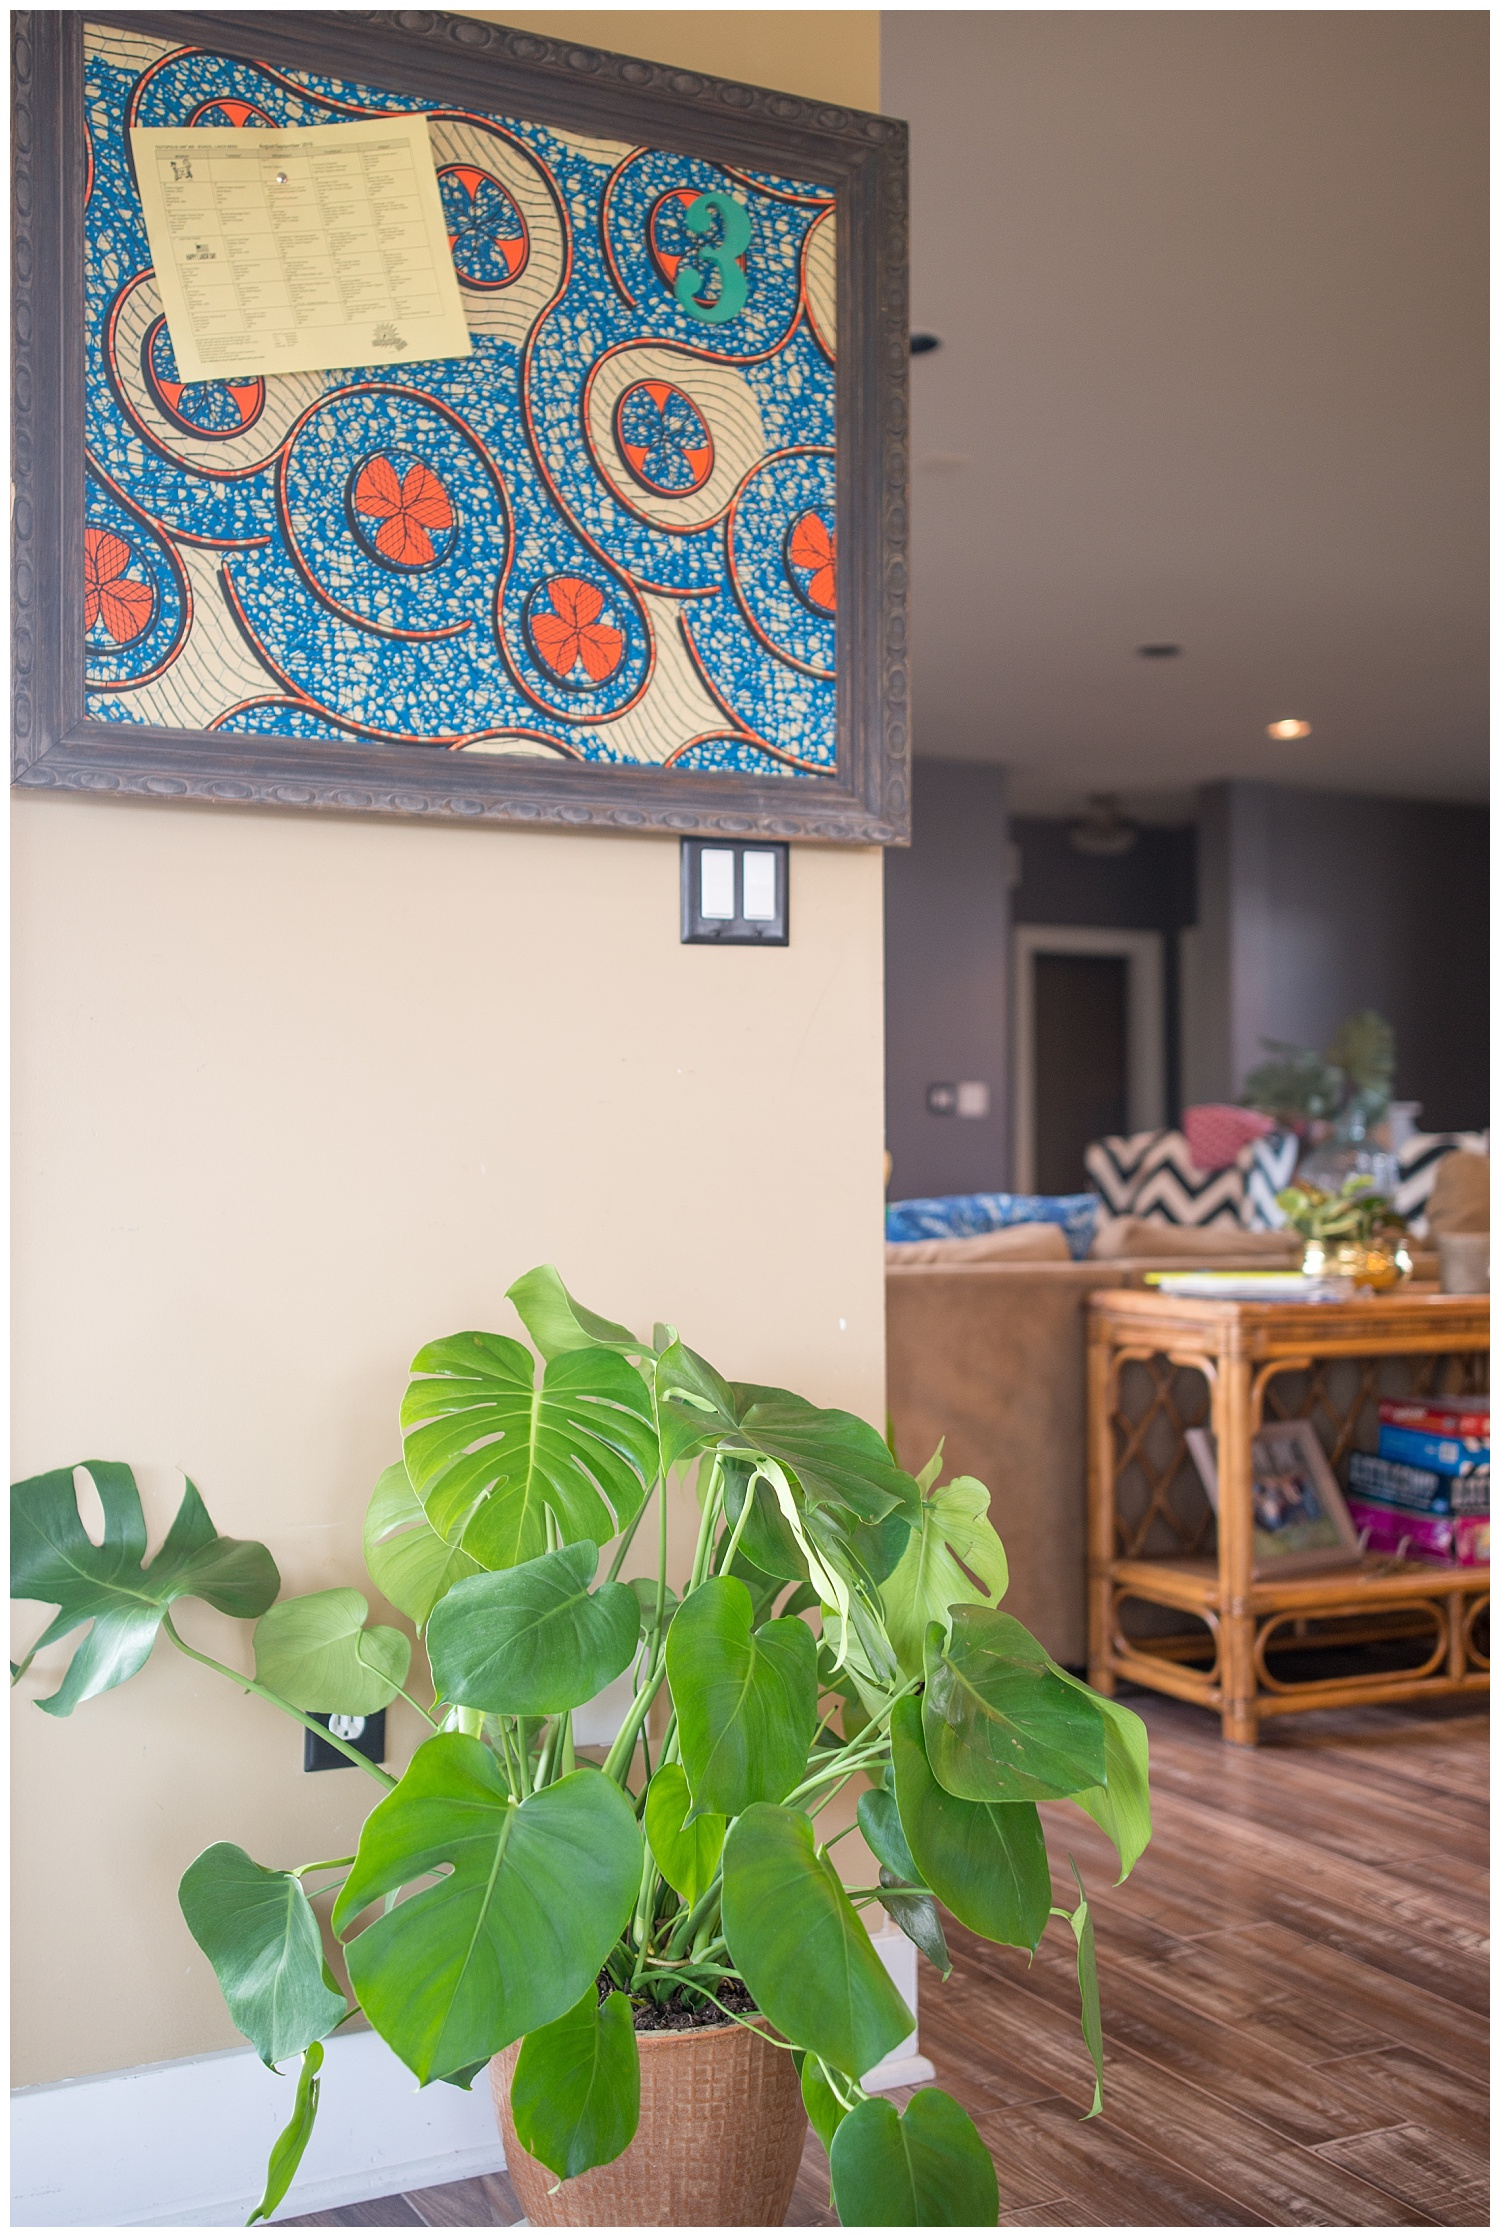 This is an example of a pinboard that you can find in both Fresh Digs and her online shop.  This particular one was made with African wax print fabric that I brought back from South Africa. This view is from the sunroom looking into her wide open living room.